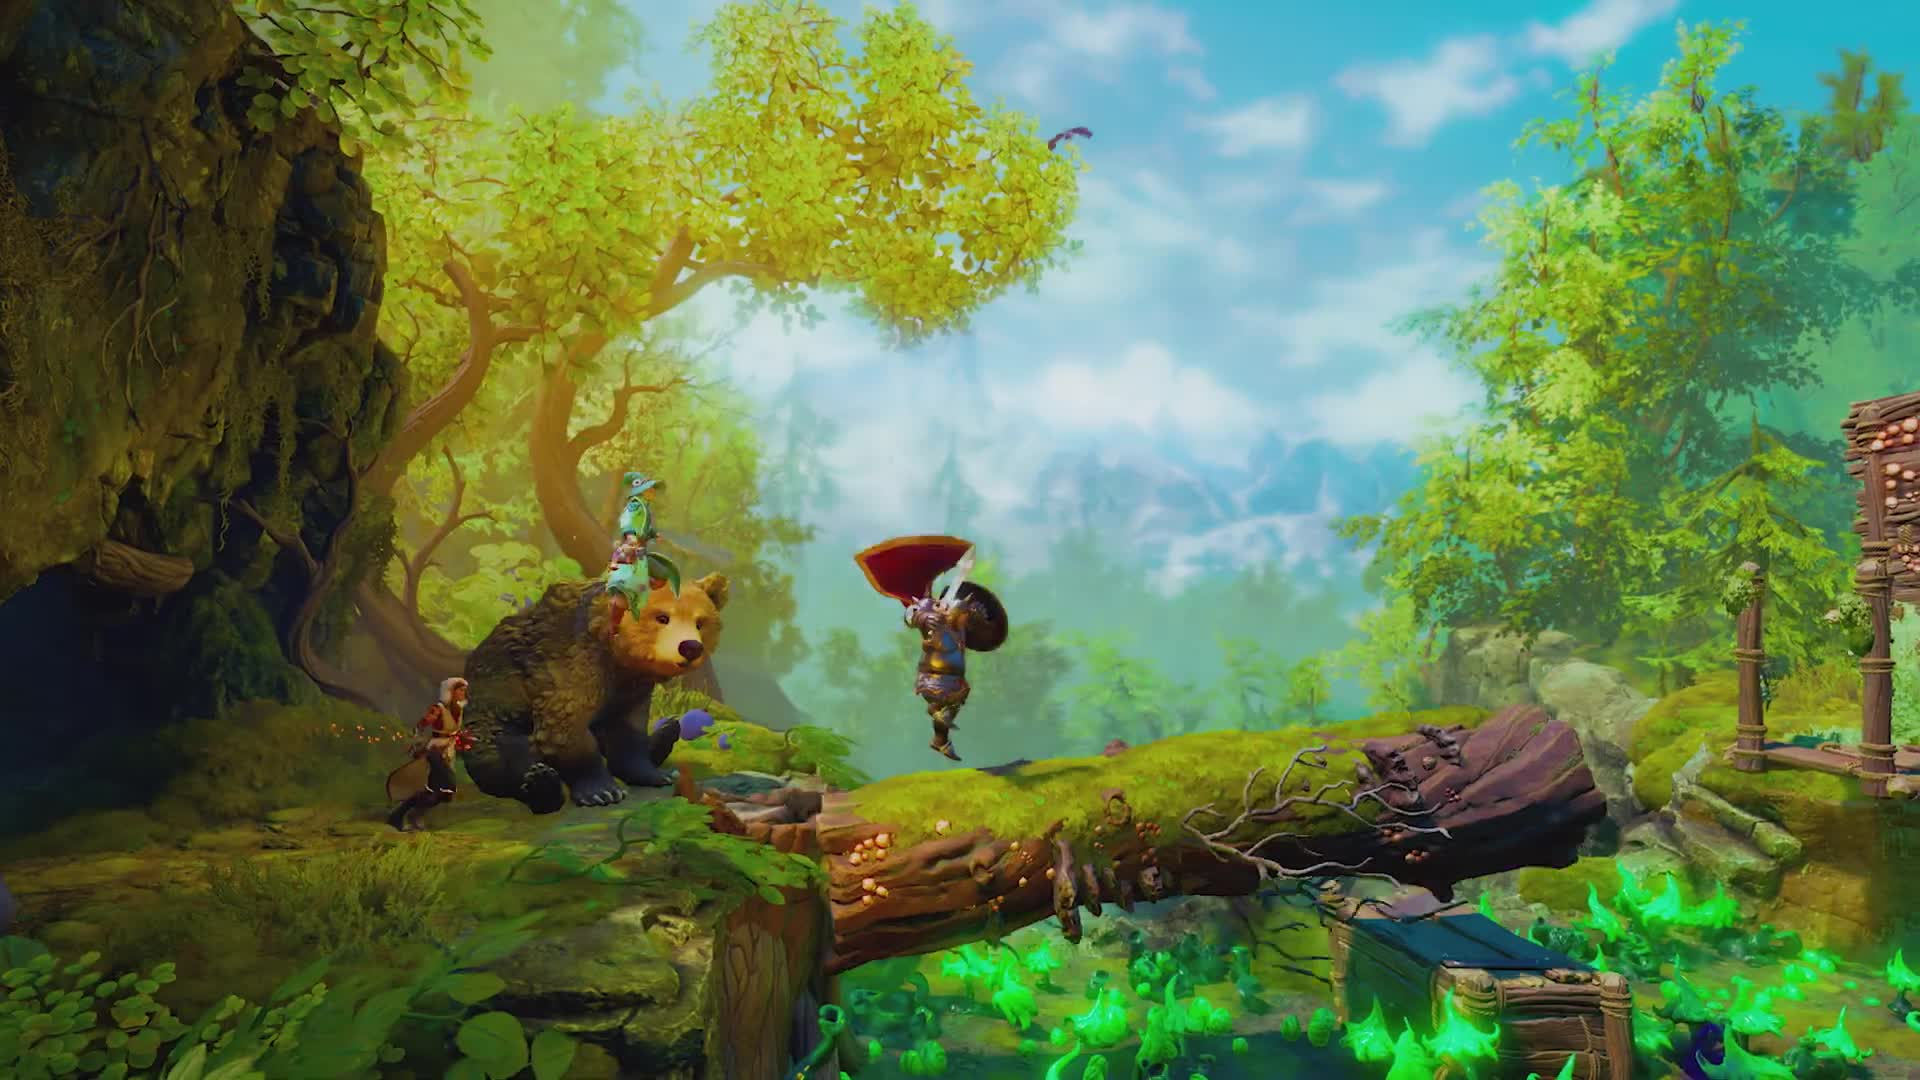 Trailer, Trine, Frozenbyte Games, Trine 4, The Nightmare Prince